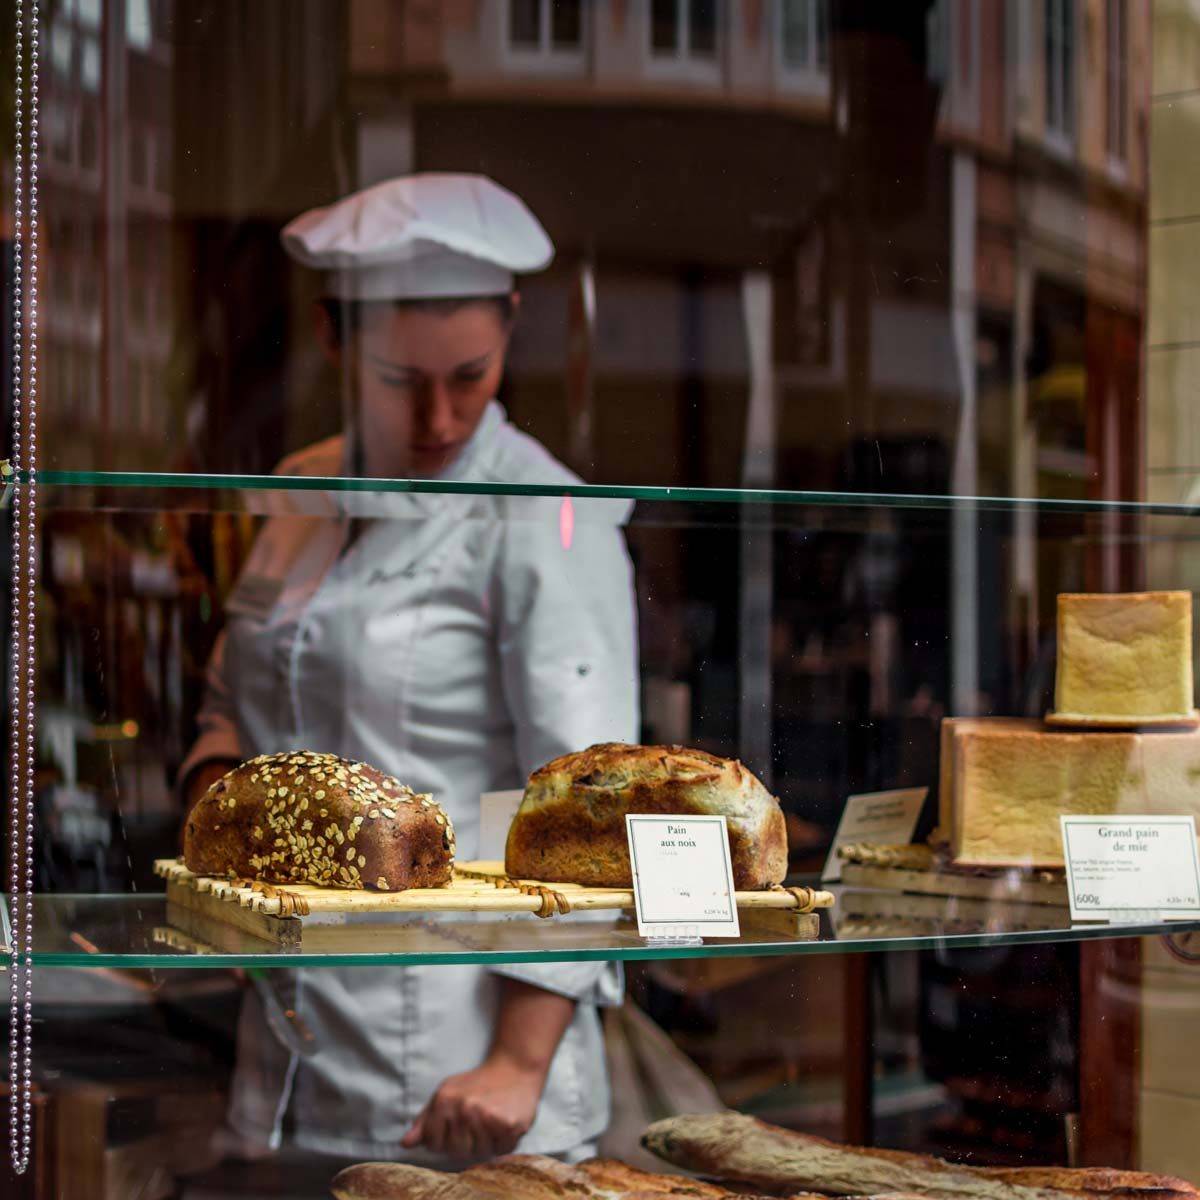 A business owner works in her bakery